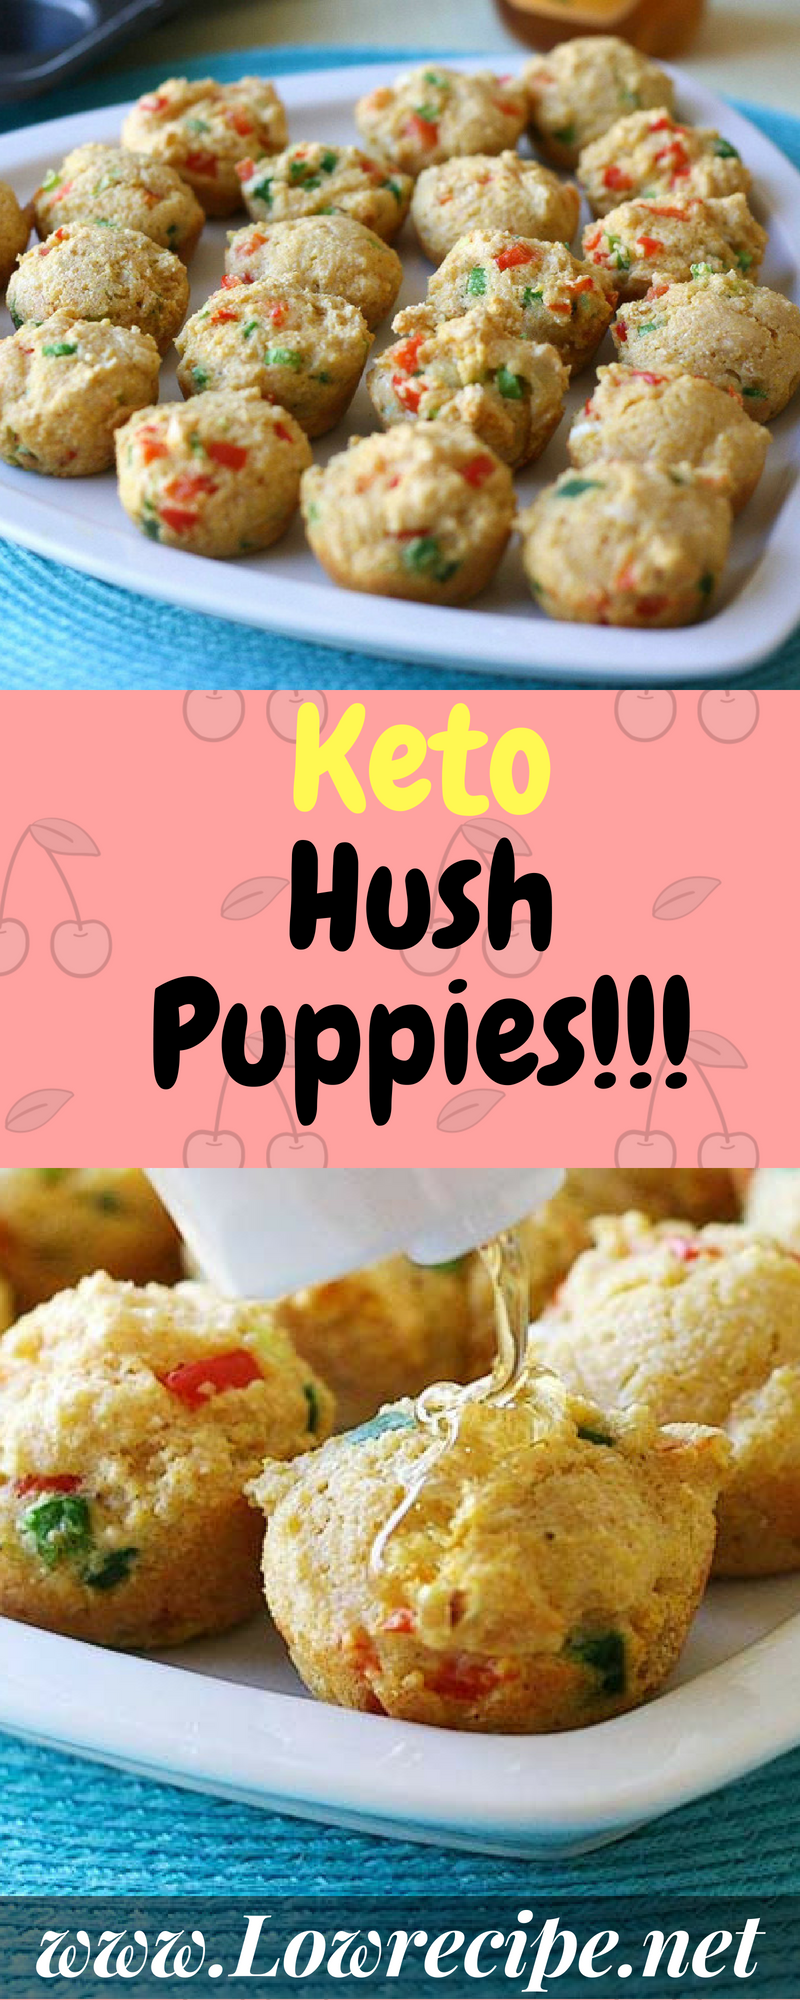 Keto Hush Puppies With Images Recipes Hush Puppies Recipe Good Healthy Recipes